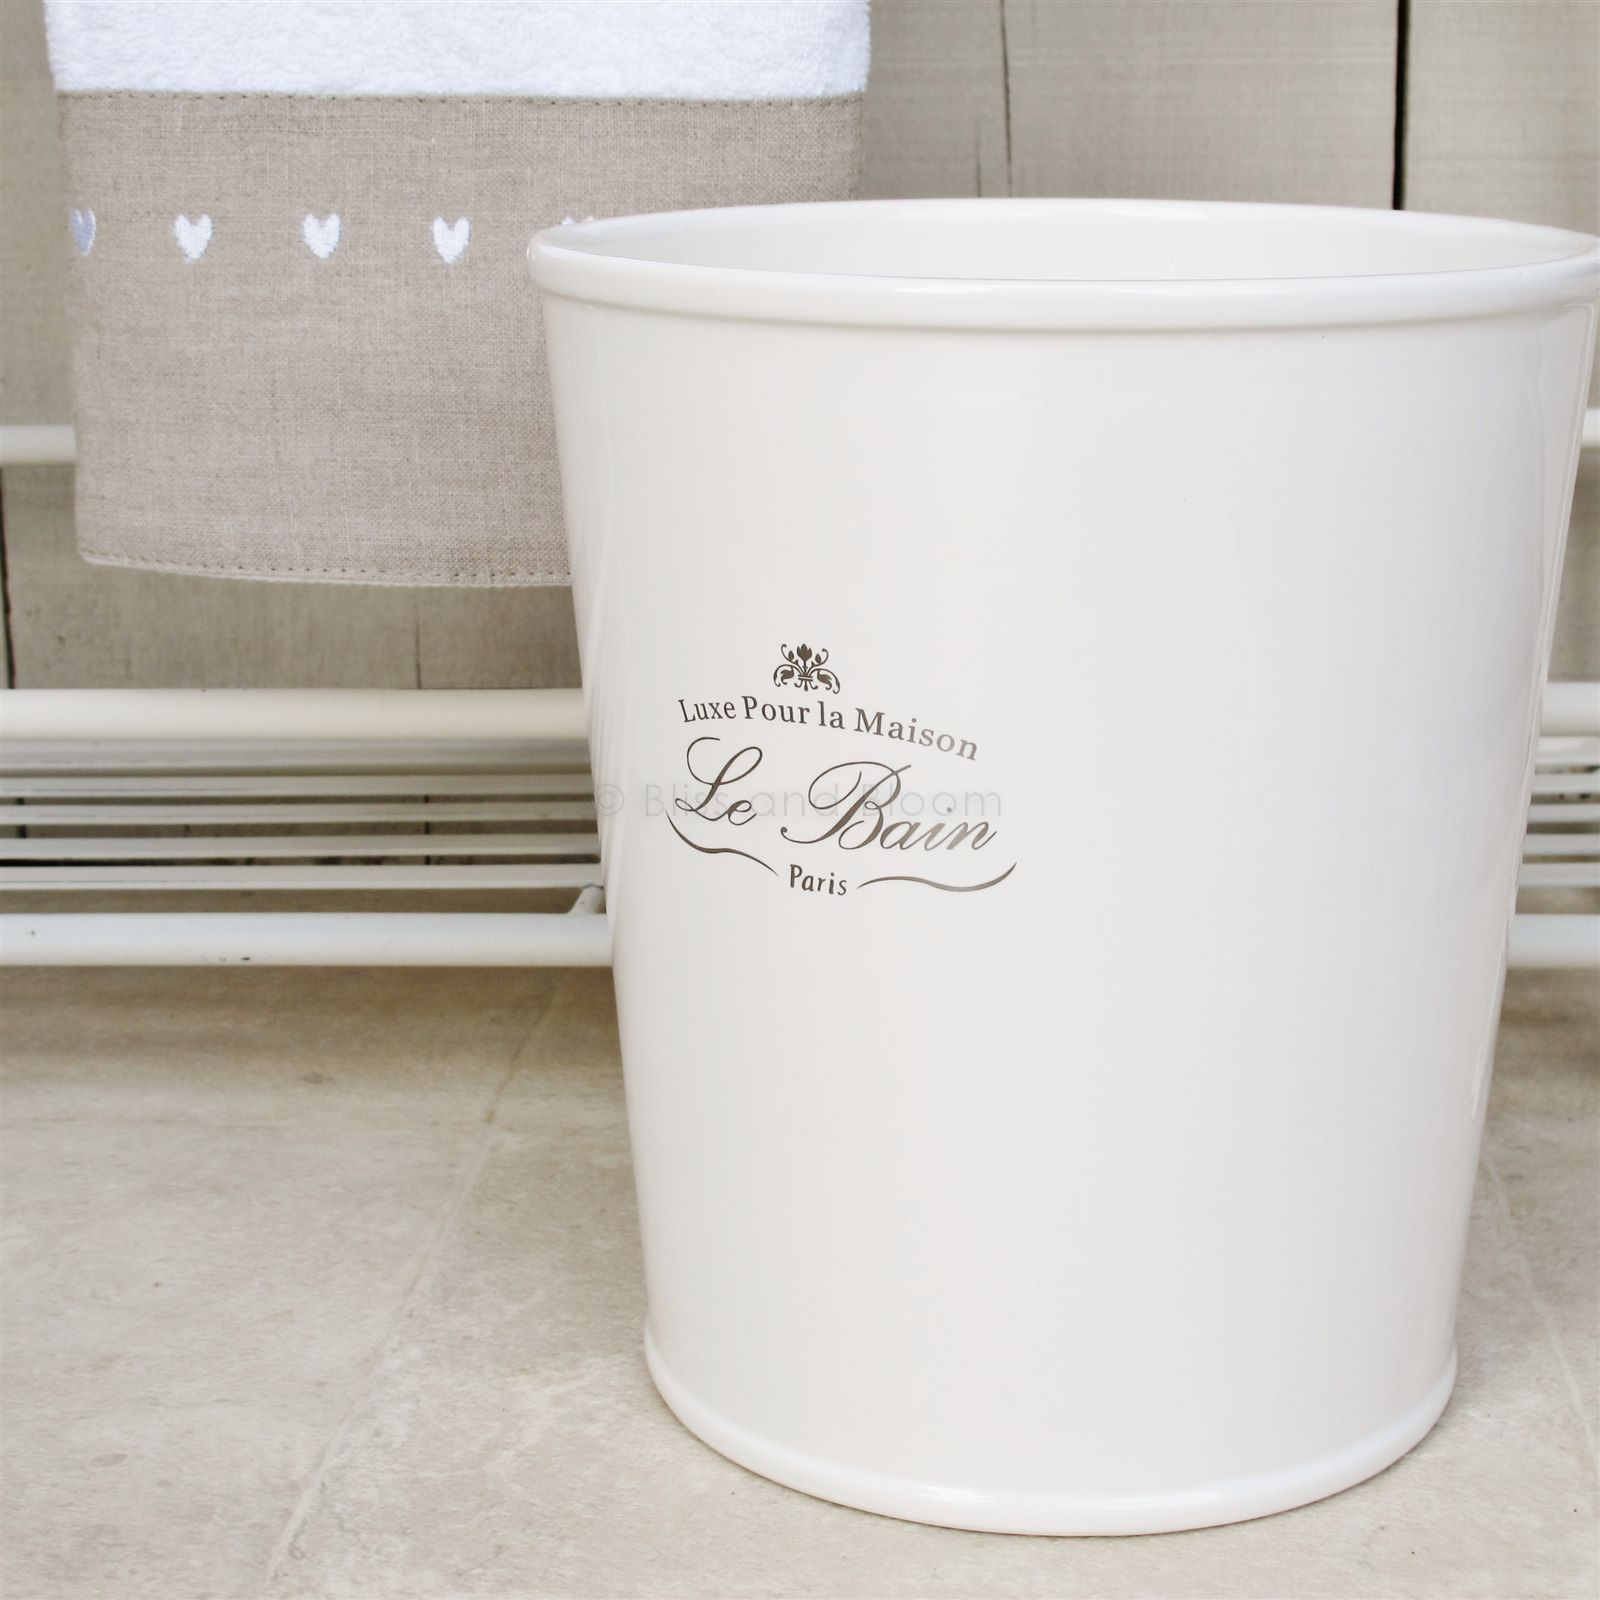 le bain ceramic bin bliss and bloom ltd ForWhite Ceramic Bathroom Bin